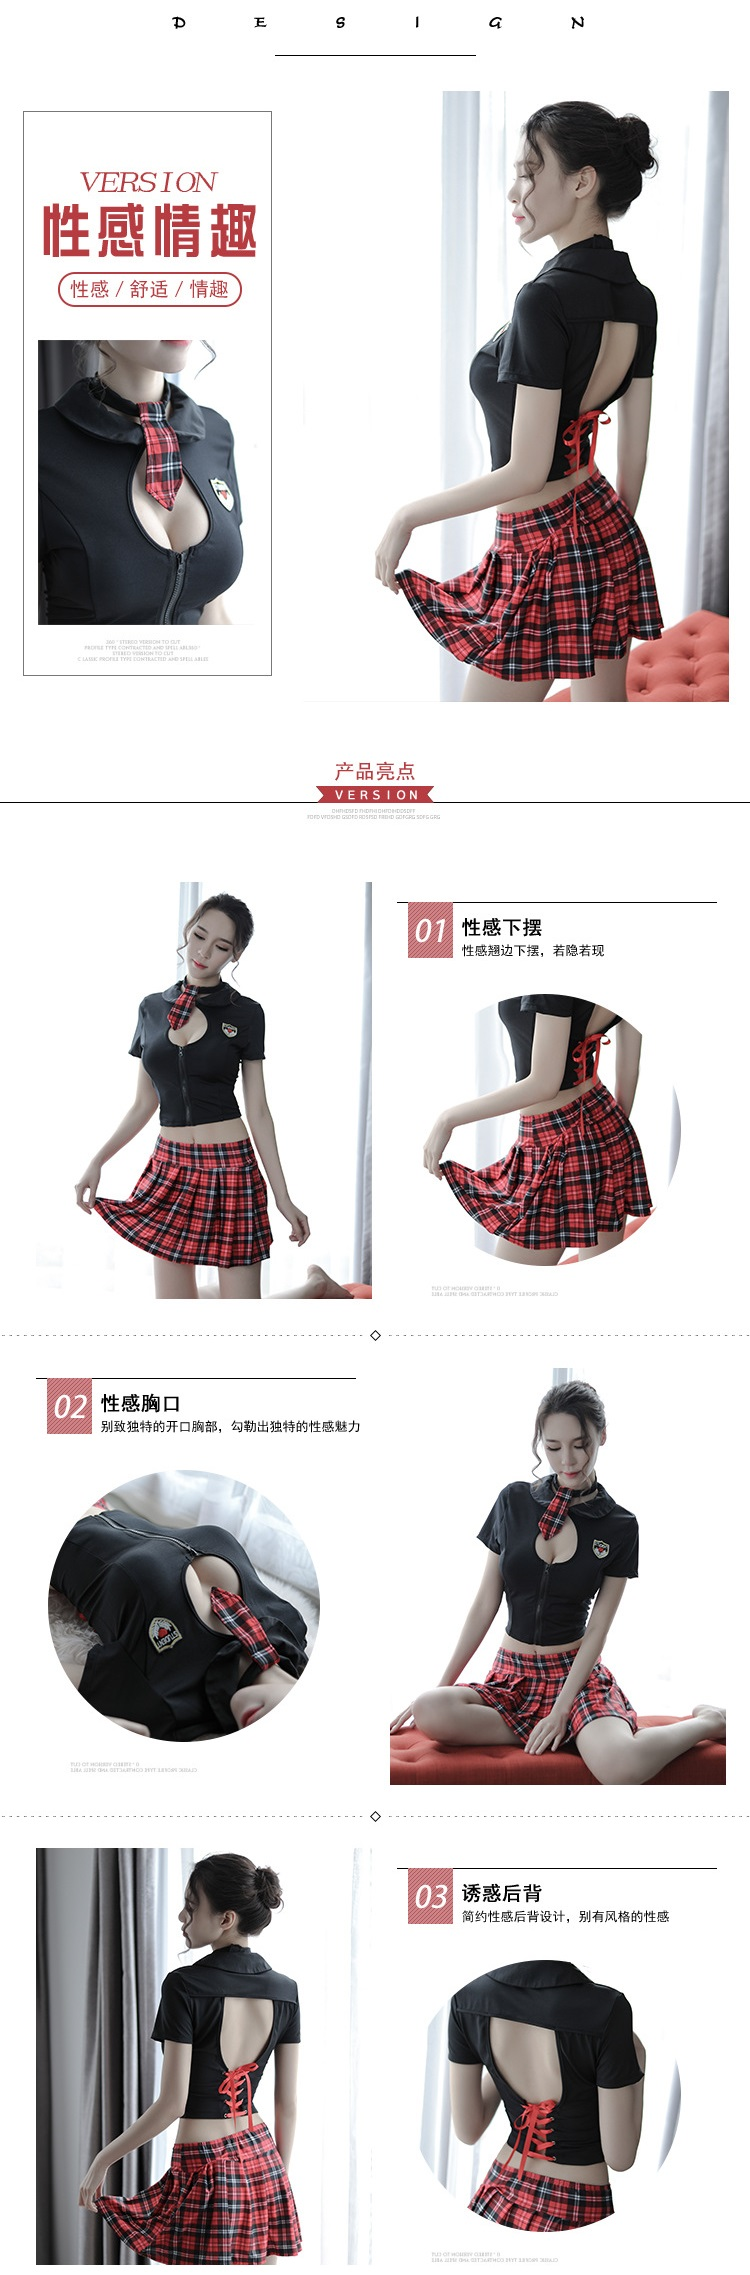 Sexy British Style Student Uniform Costumes SD019